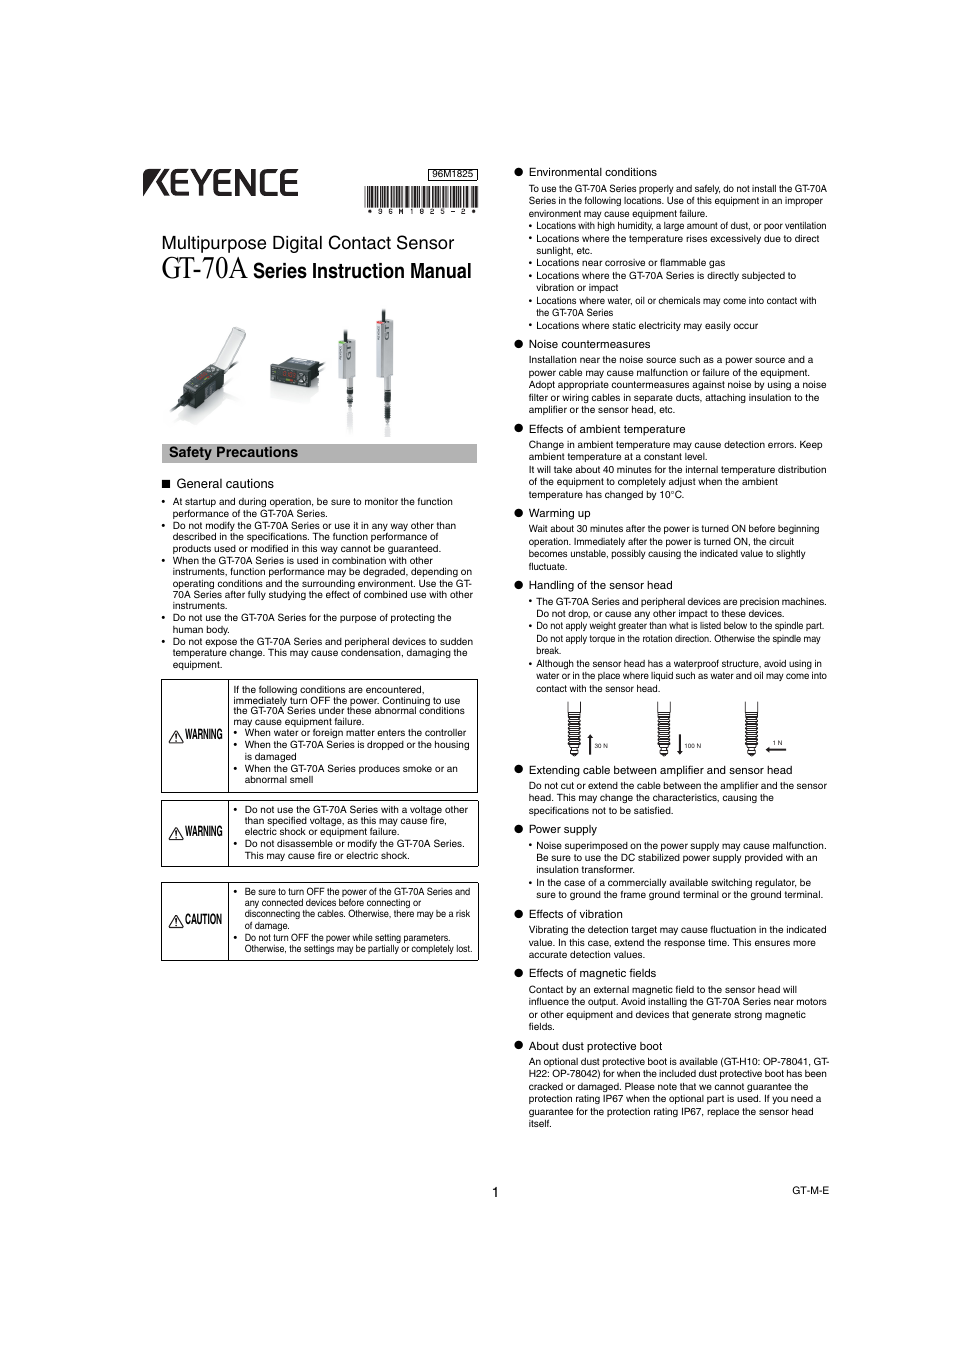 keyence gt 70a series user manual 10 pages rh manualsdir com KEYENCE Sensors KEYENCE Building